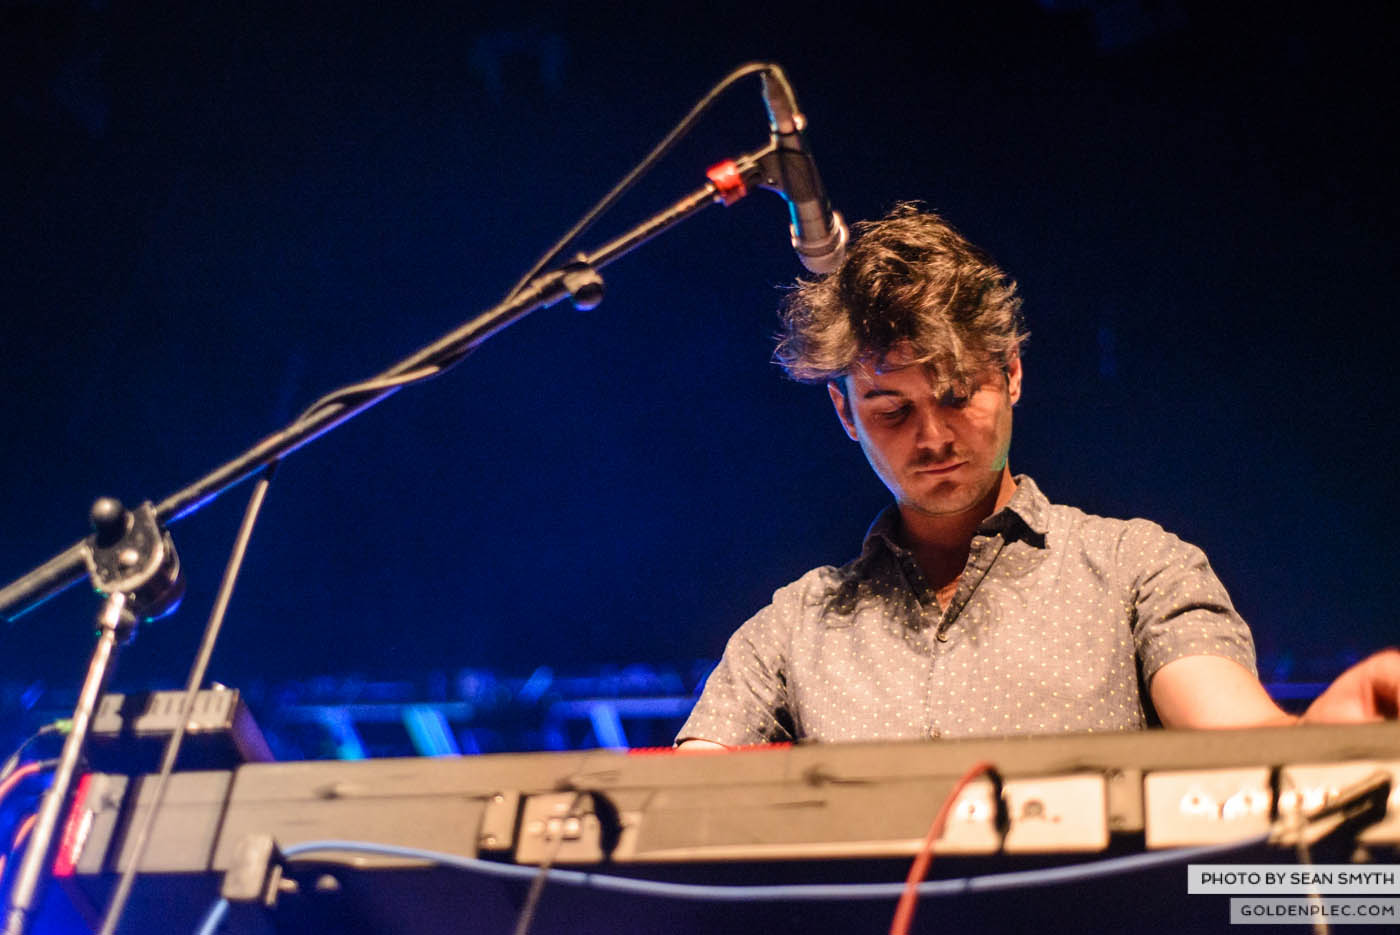 the-antlers-at-the-olympia-theatre-by-sean-smyth-30-10-14-1-of-22